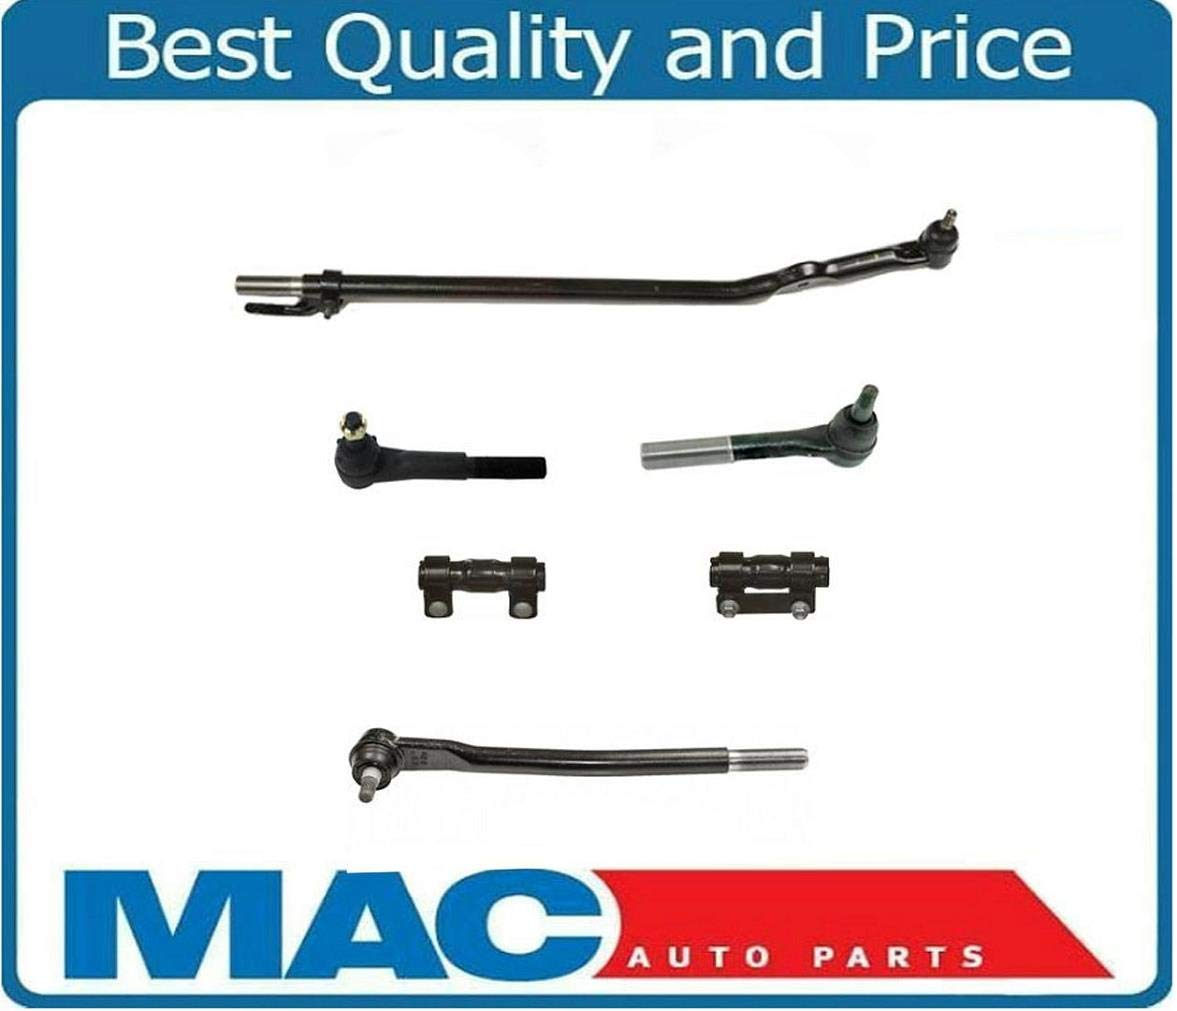 Excursion F350 F250 SD Drag Link & Tie Rod Rods 2 Wheel 6Pc Twin I Beam Axles Mac Auto Parts